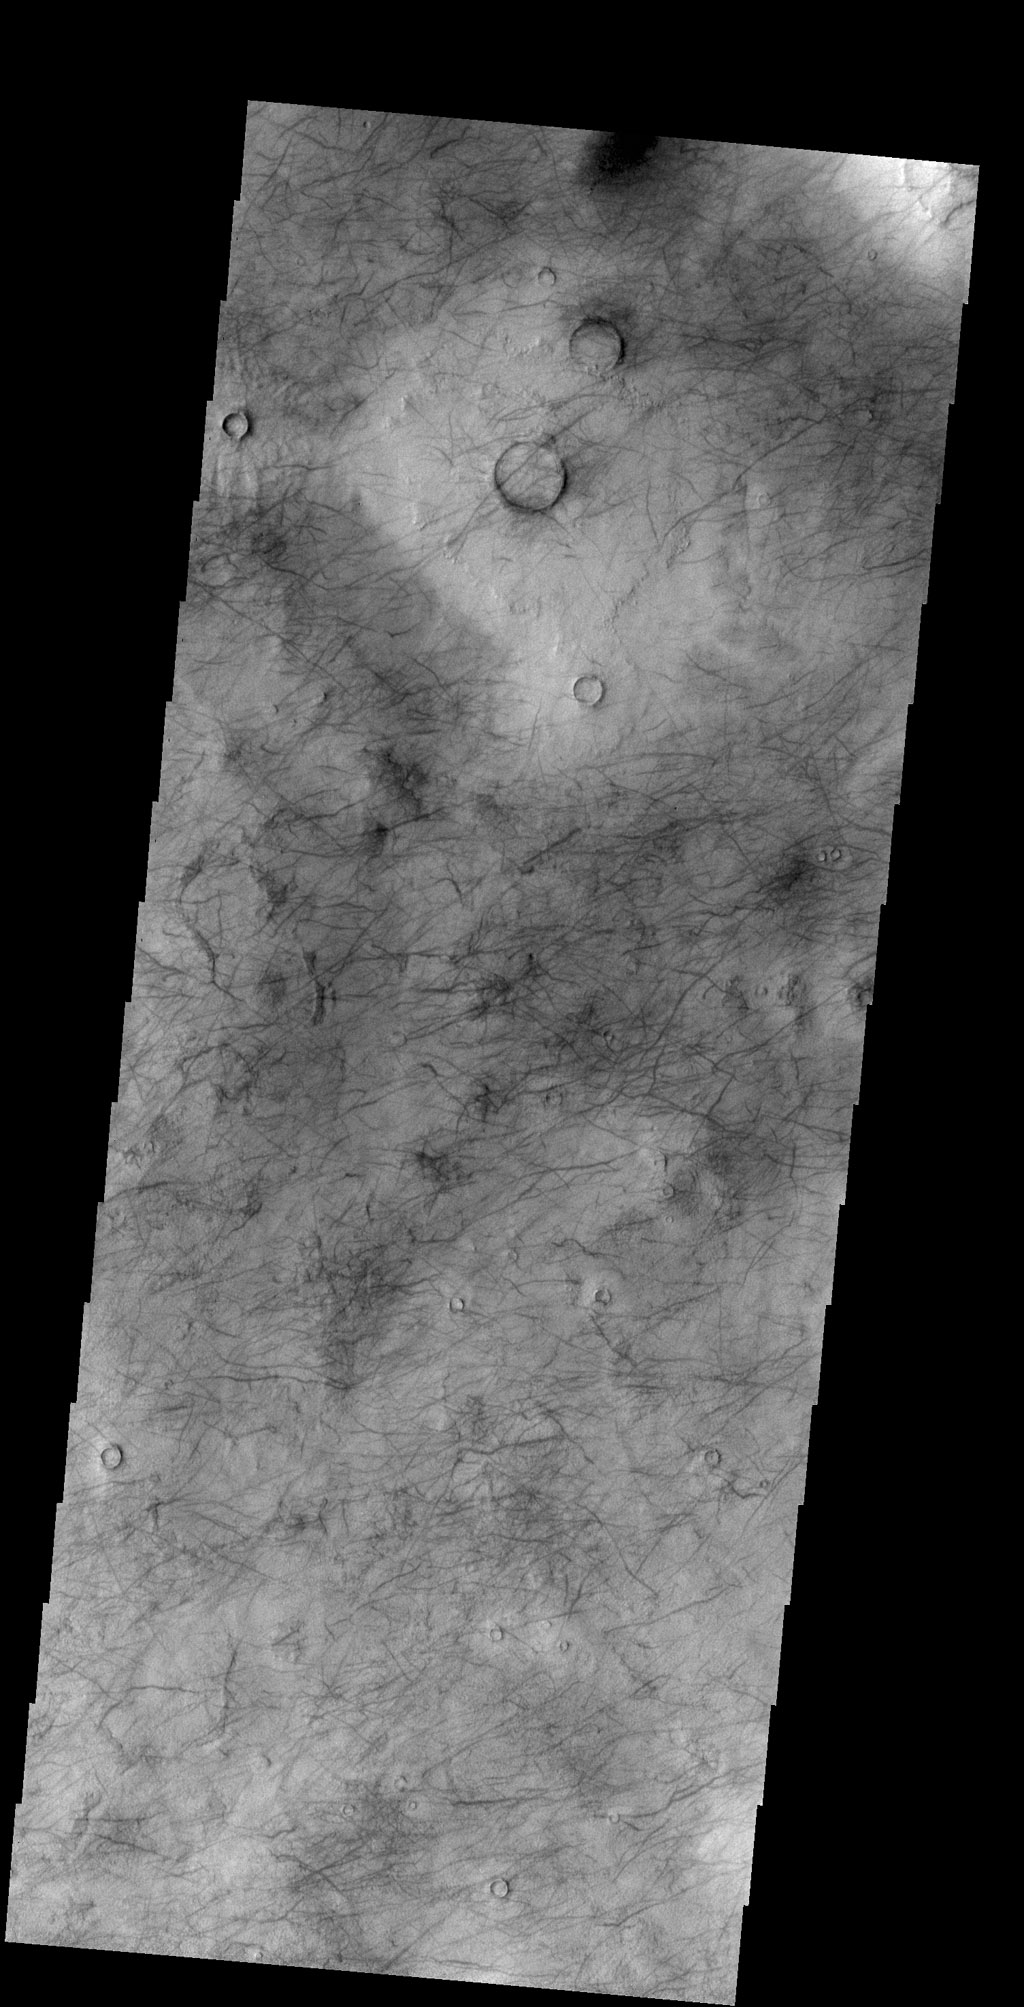 Looking at yet another portion of Utopia Planitia, NASA's 2001 Mars Odyssey spacecraft still find hundreds of dust devil tracks.